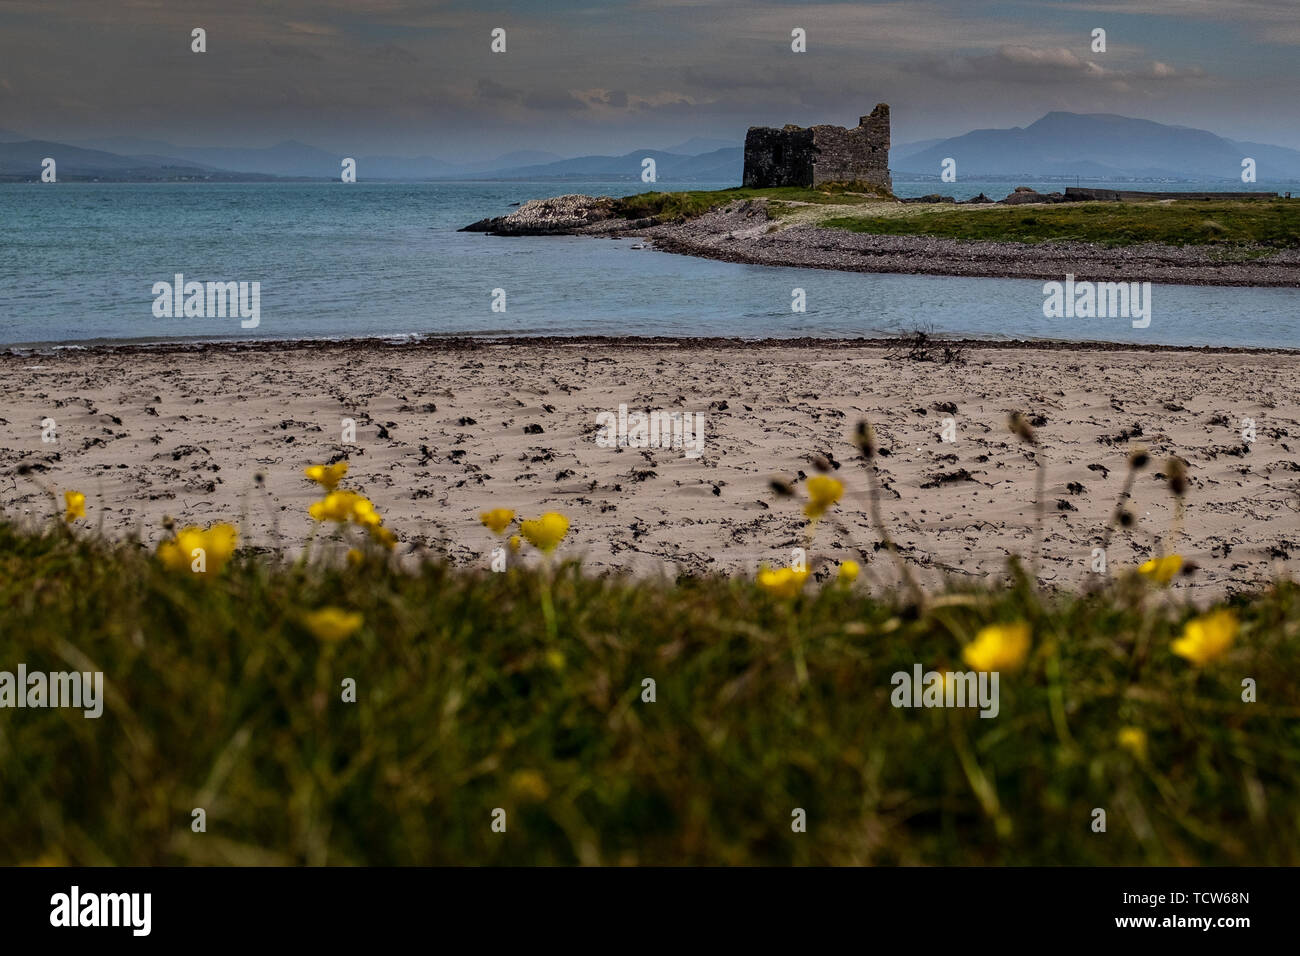 The desolate ruins of a large house or small castle on the coastline on the Ring of Kerry, Ireland on an overcast day - Stock Image